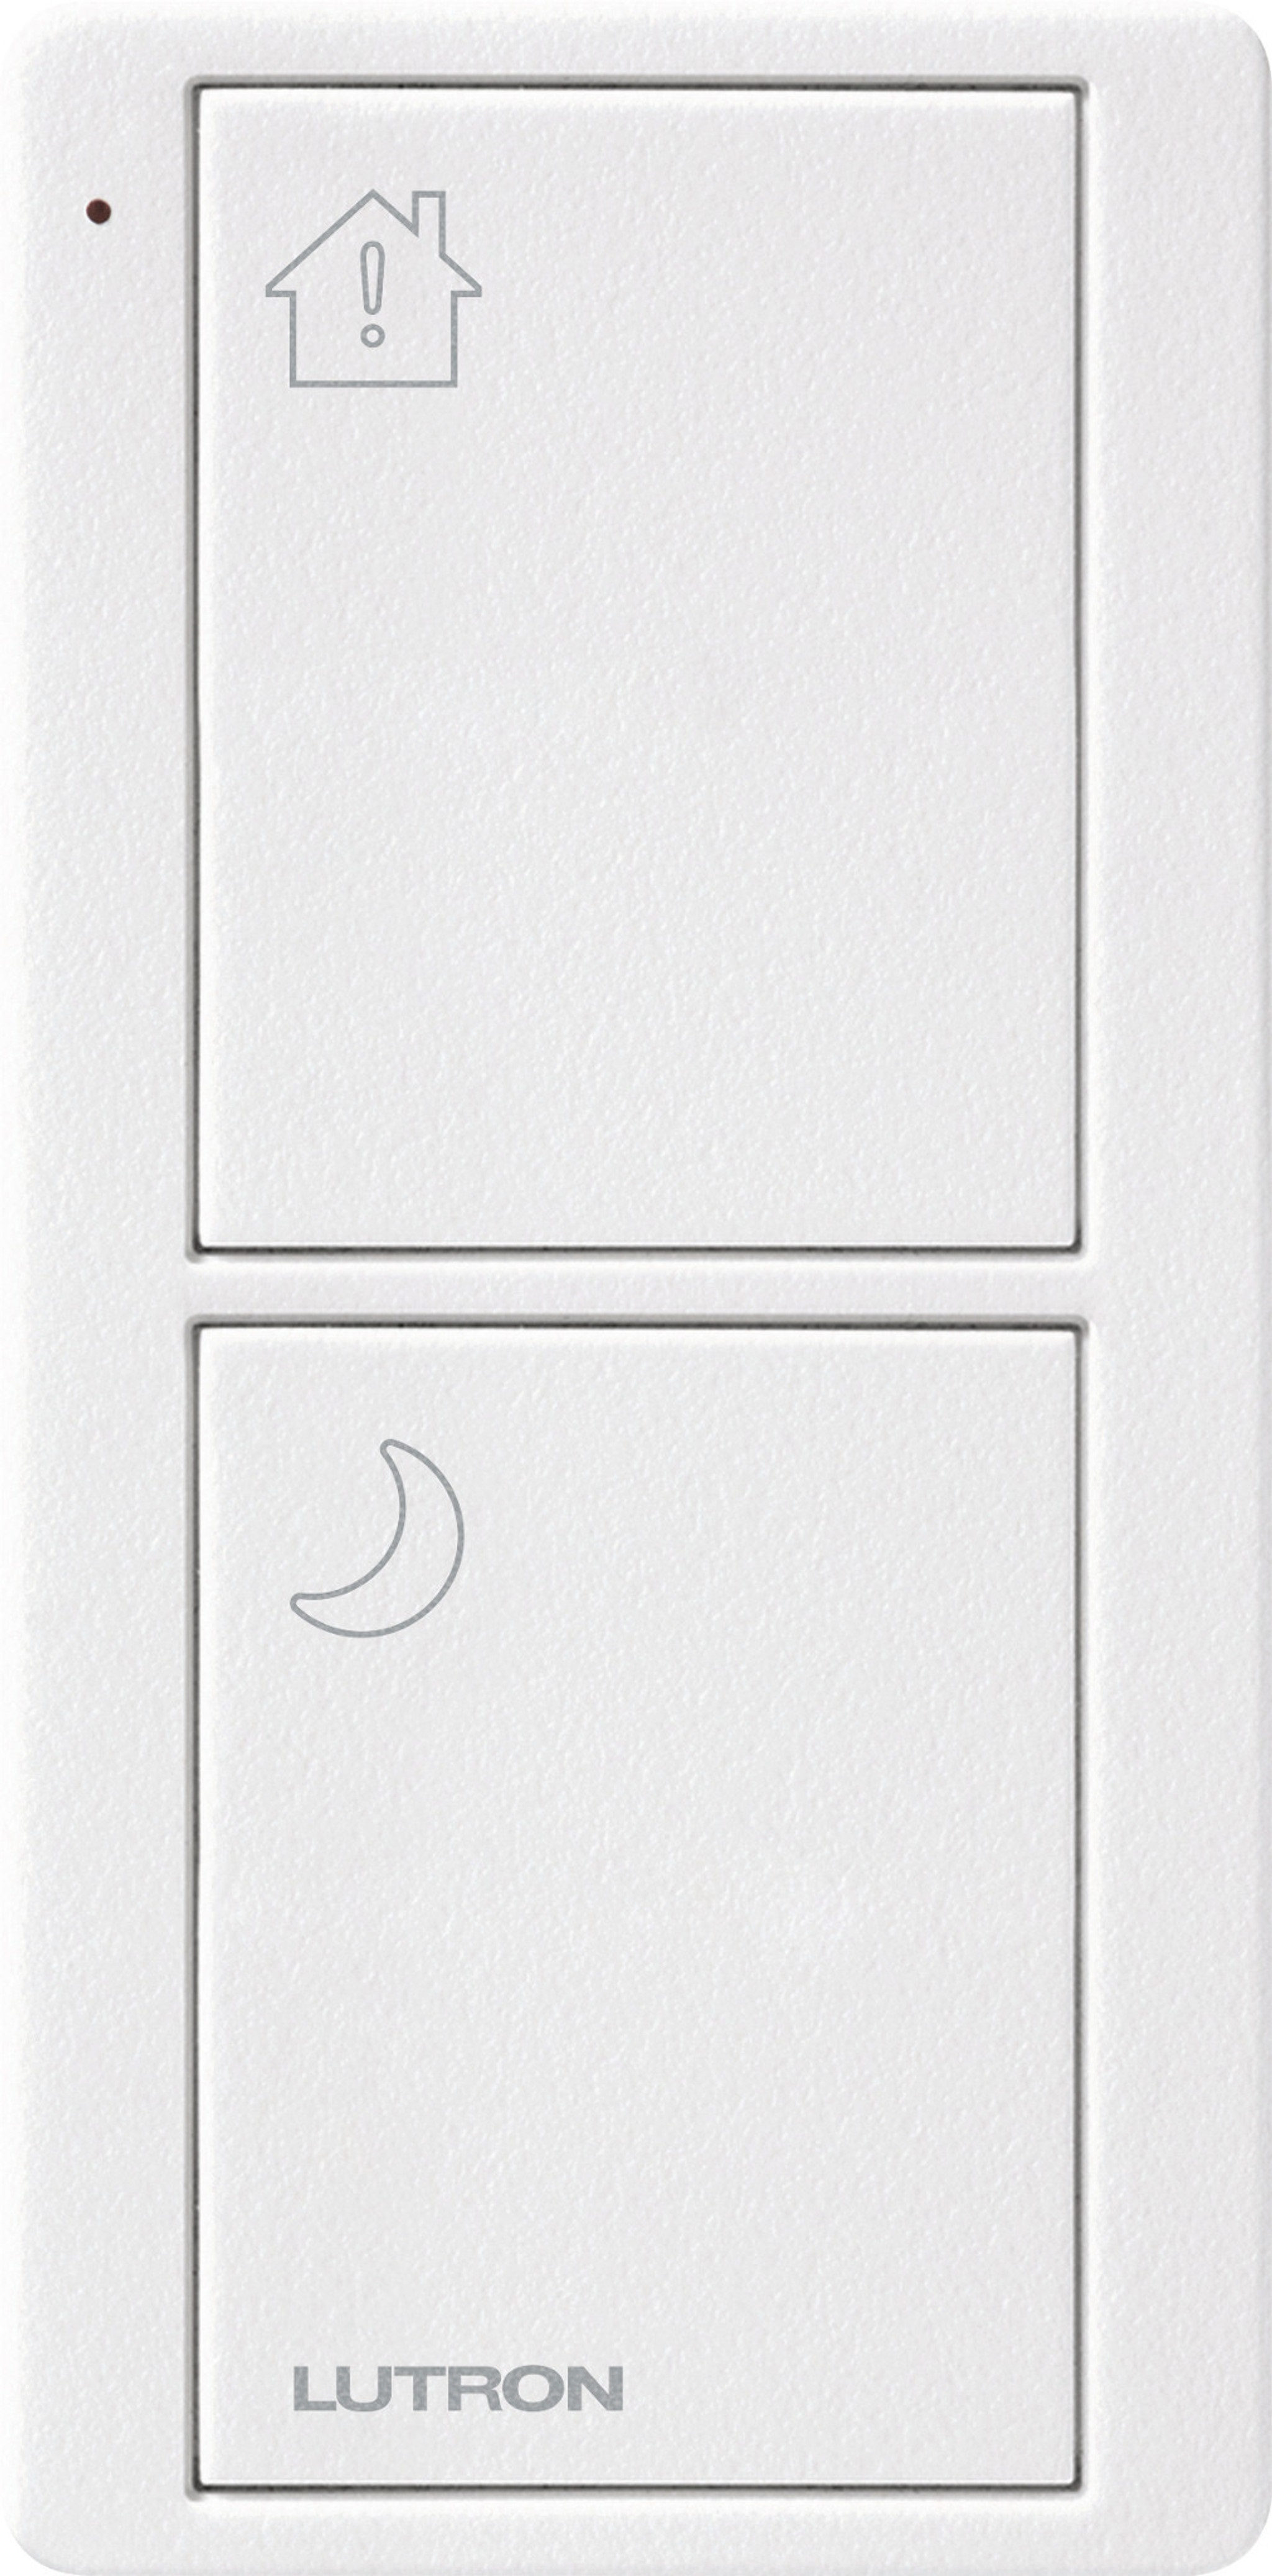 Lutron Pico RF 2 Button Control (Artic White) (Bedside Model)